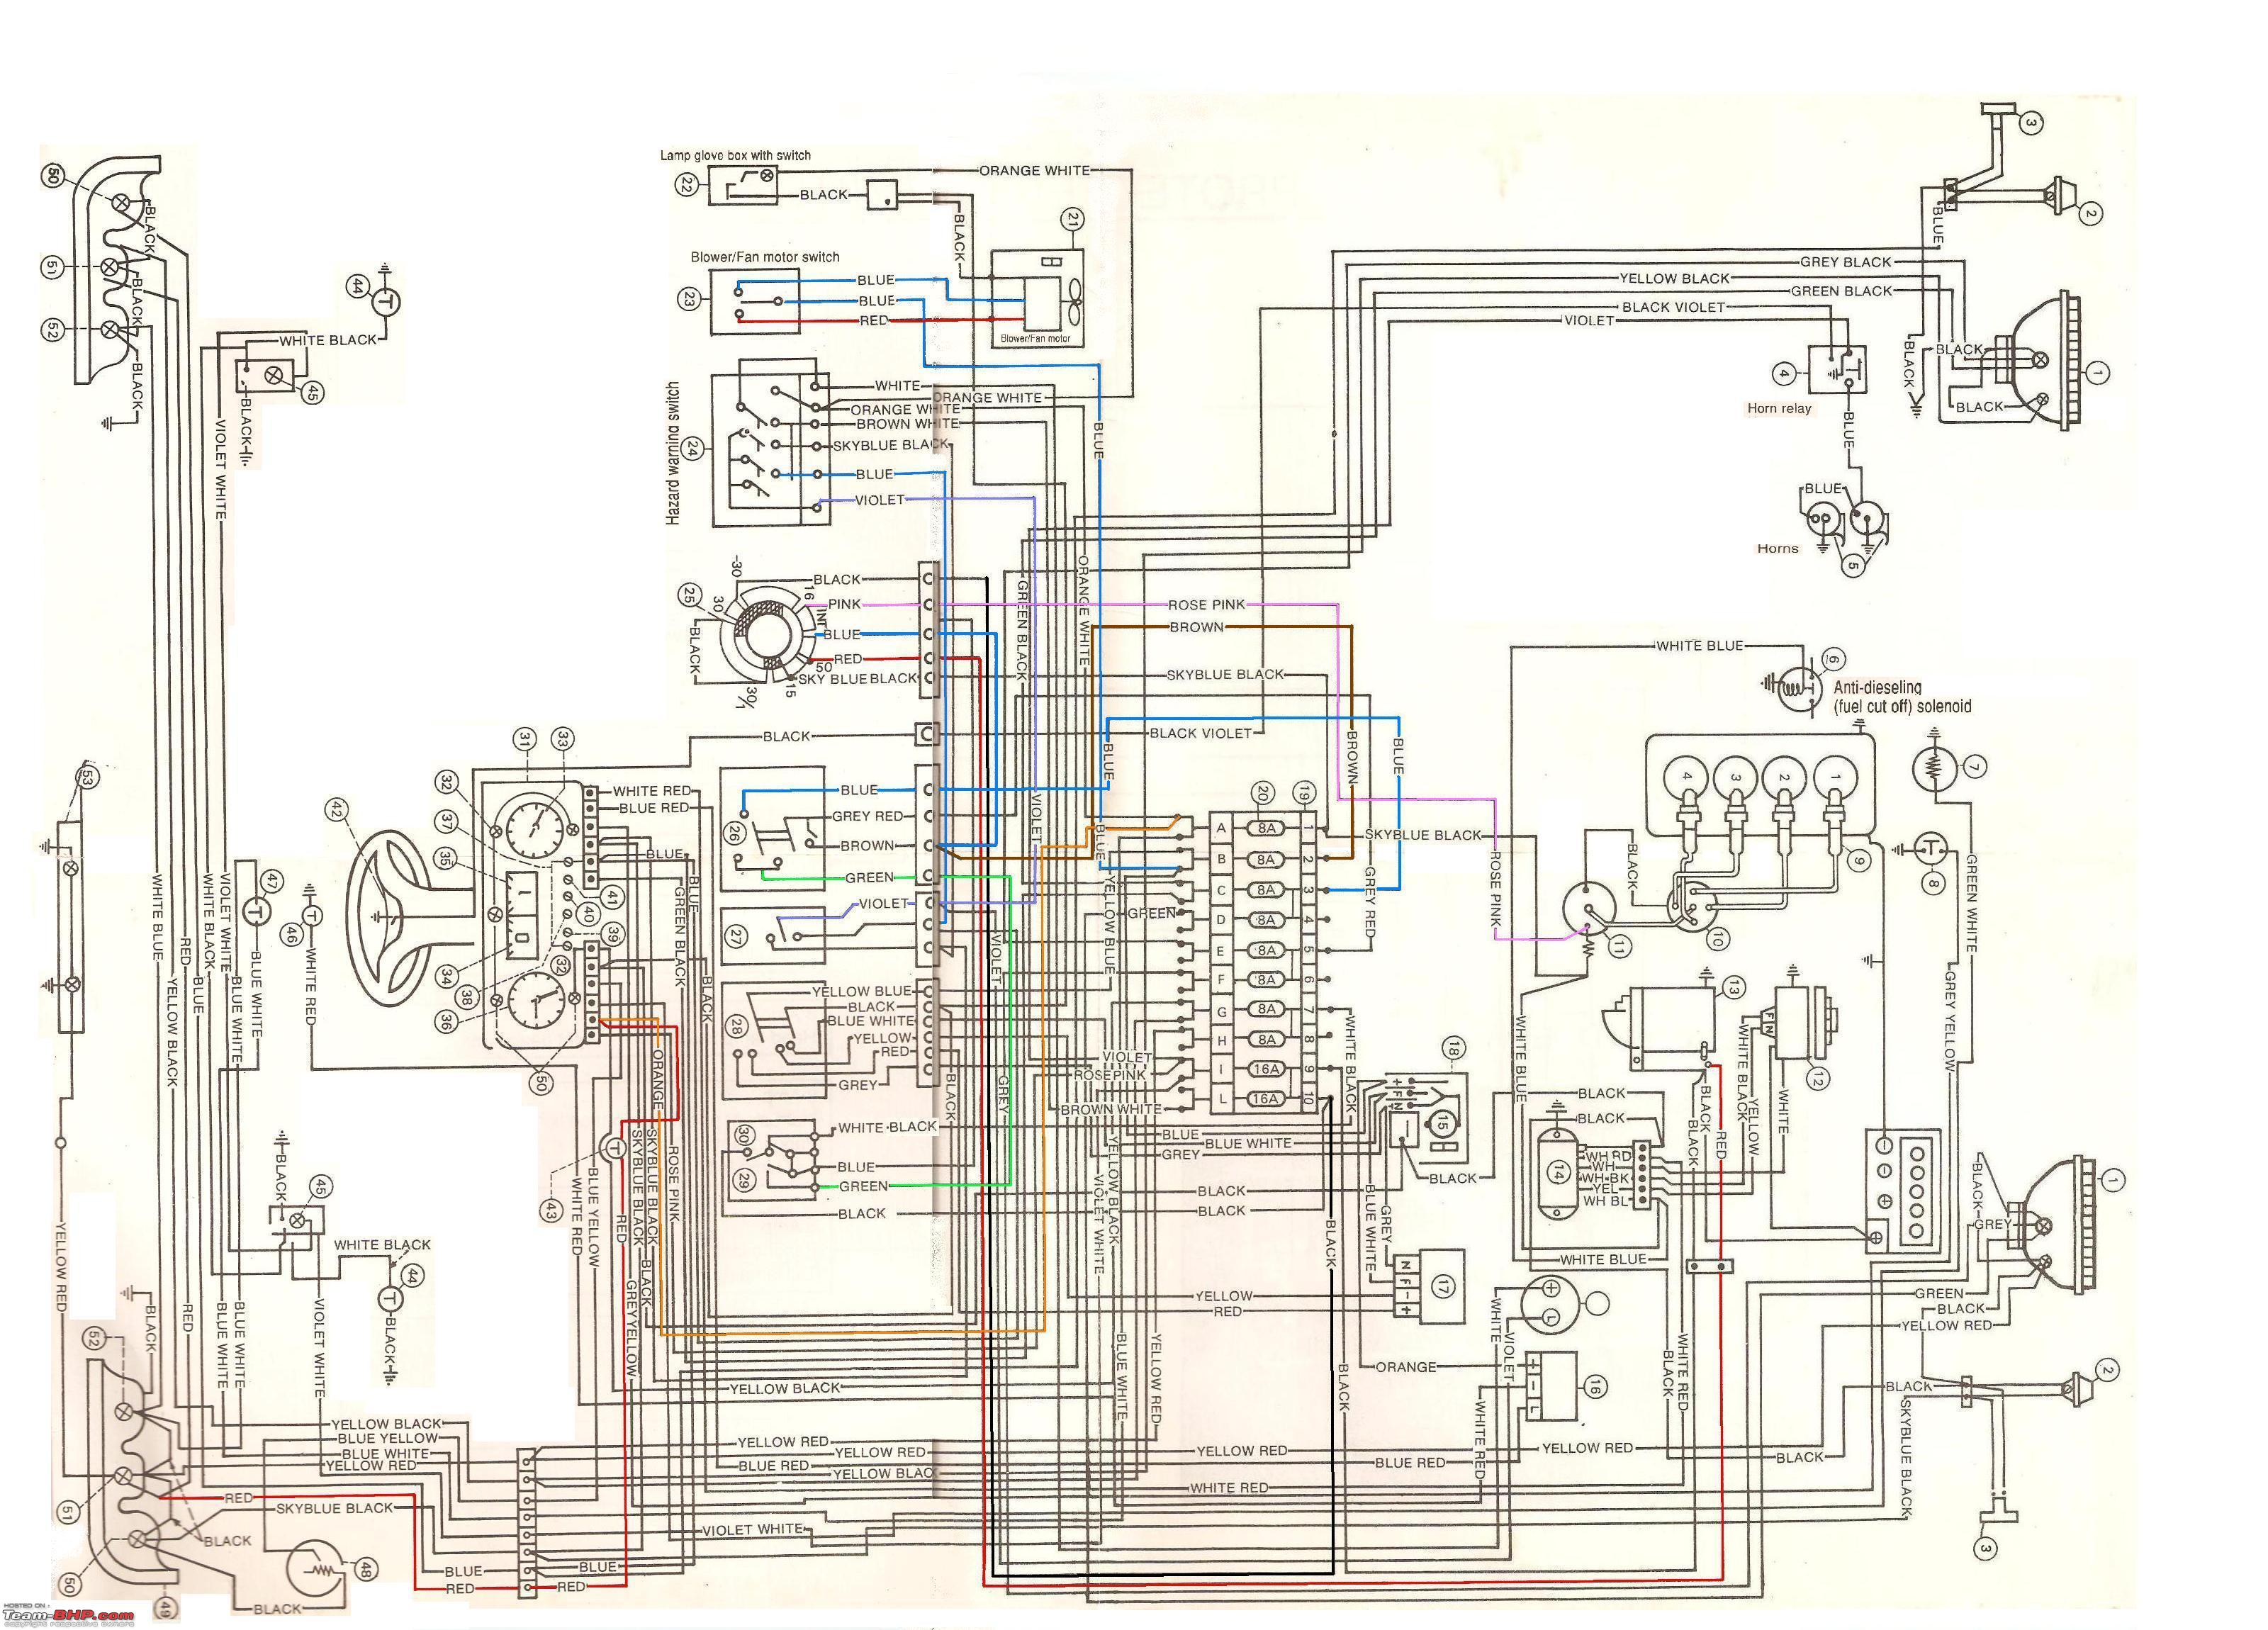 wiring diagram of suzuki alto wiring wiring diagrams online wiring diagram of suzuki alto